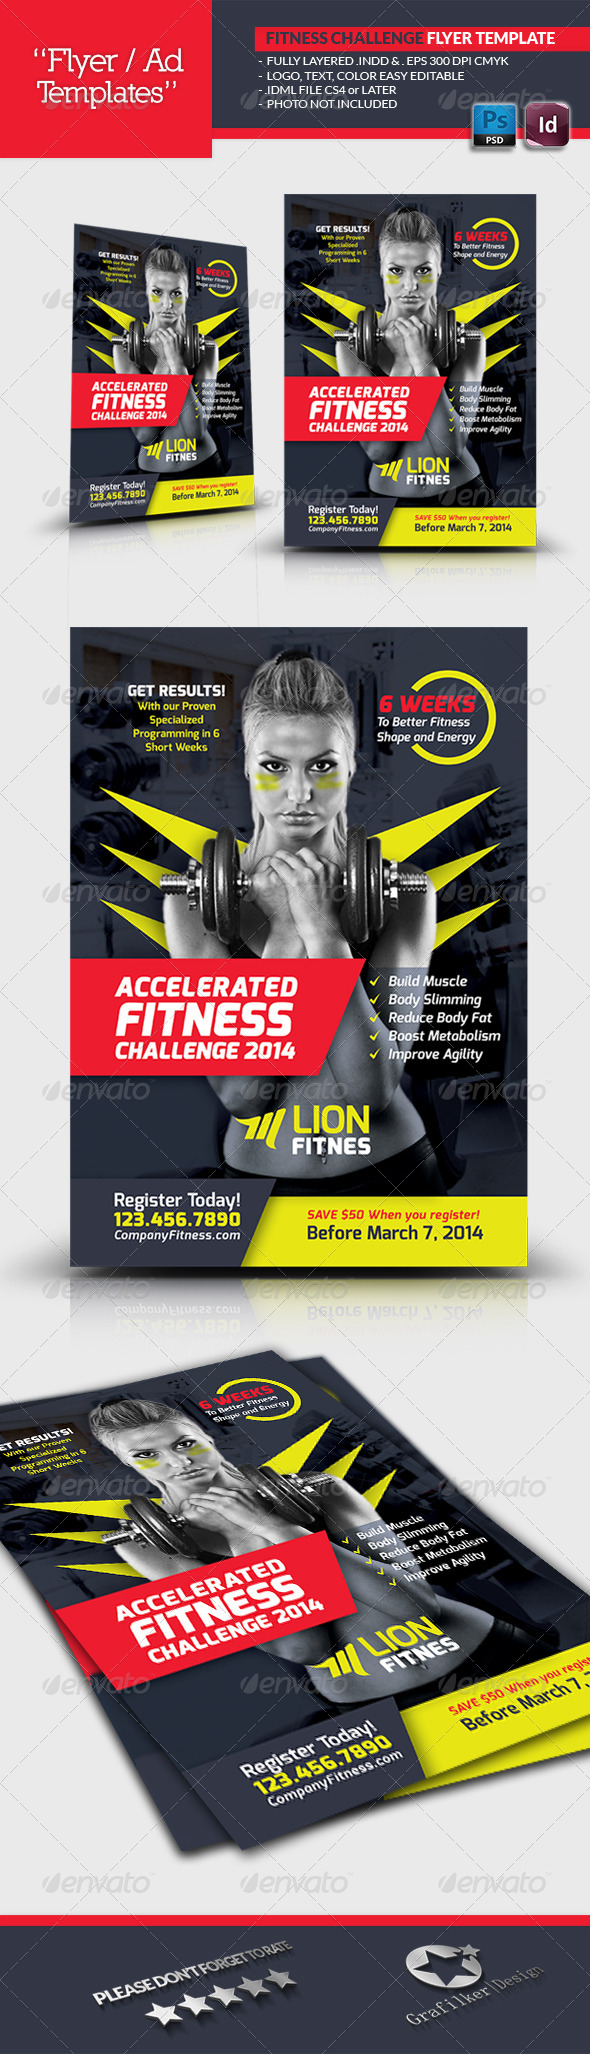 GraphicRiver Fitness Challenge Flyer Template 6708833